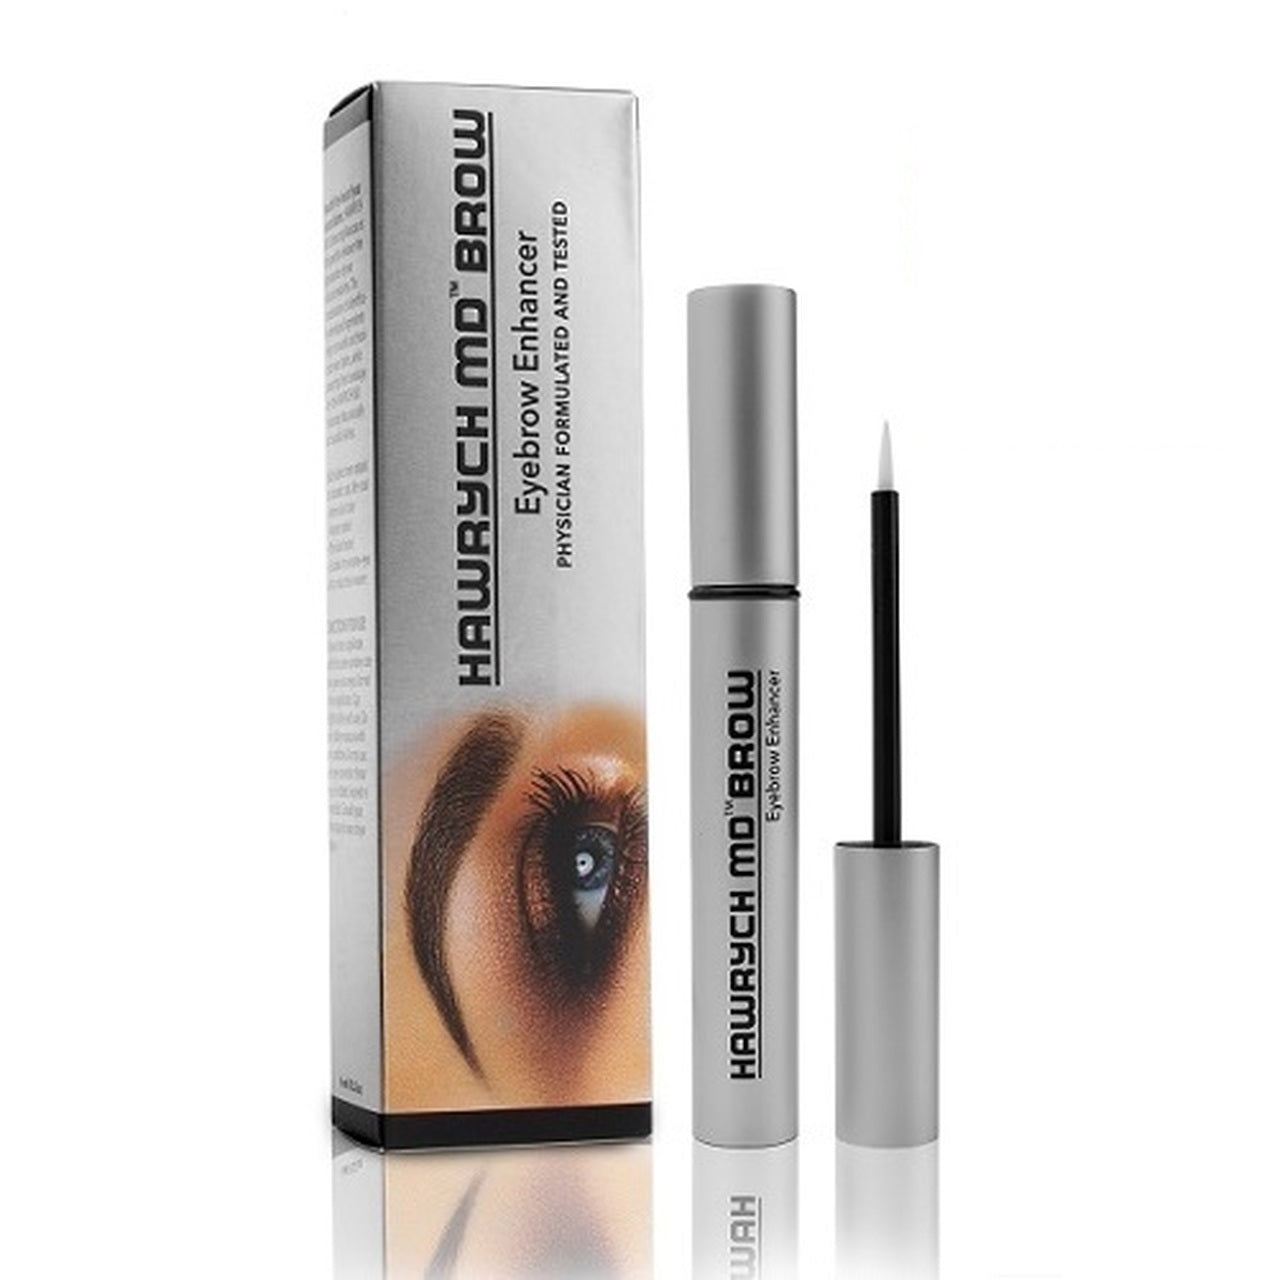 HAWRYCH MD Brow Enhancer | 5 ml. Wholesale